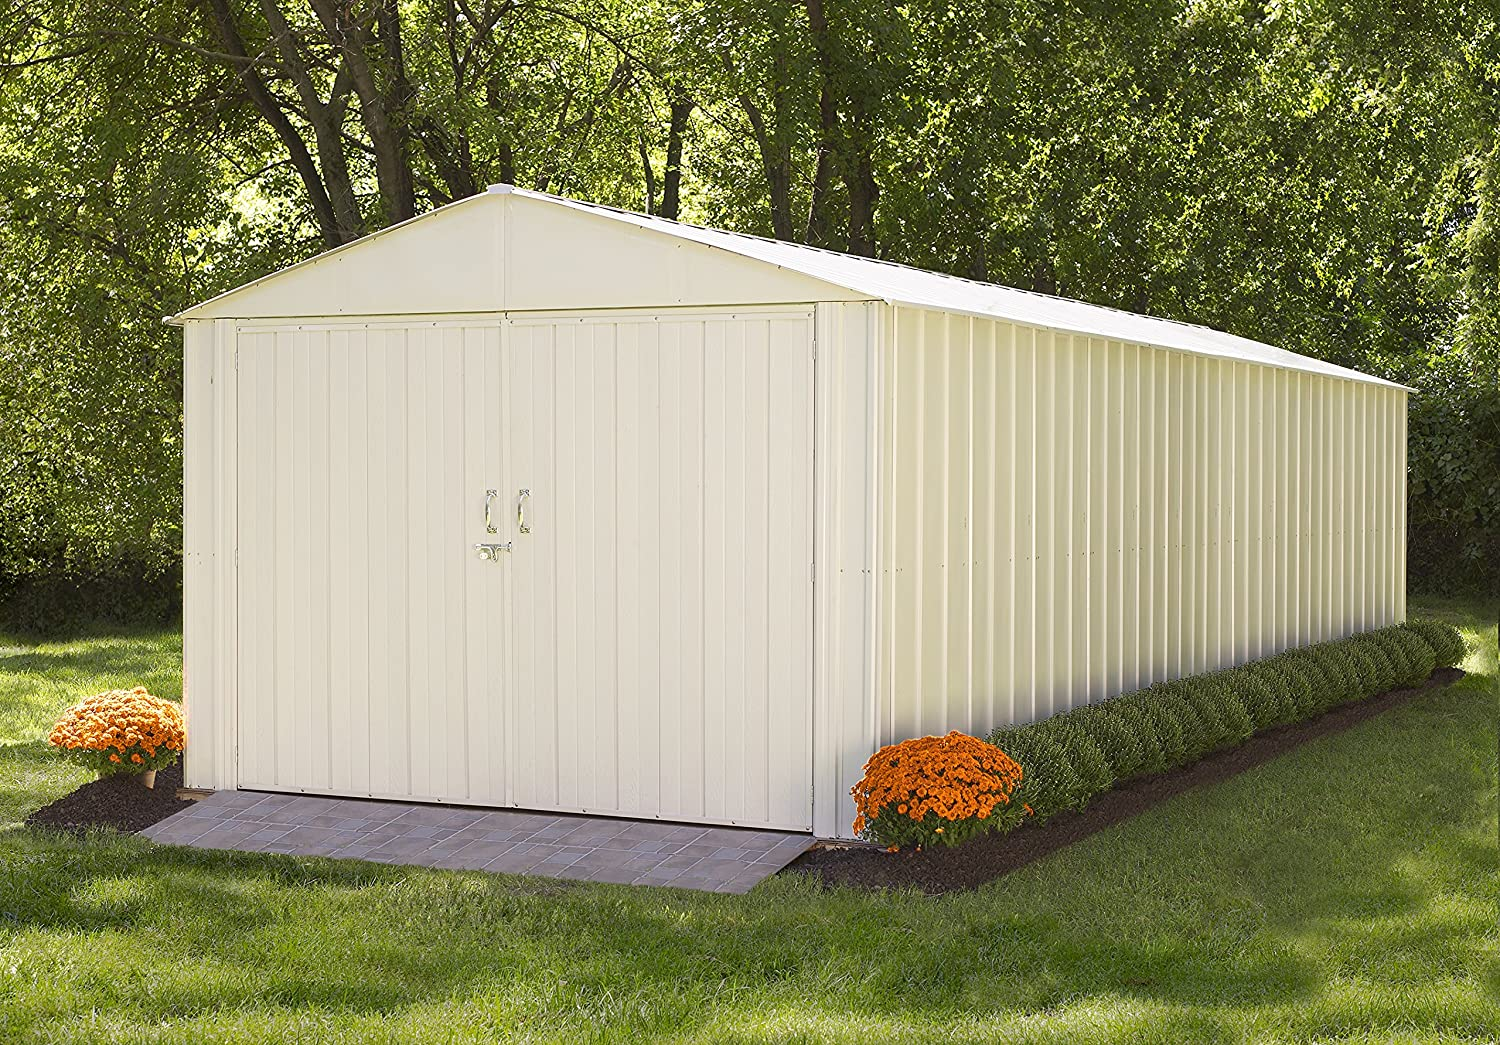 amazoncom steel storage shed 10 x 25 ft high gable galvanized eggshell sheds outdoor storage garden outdoor - Garden Sheds 5m X 3m